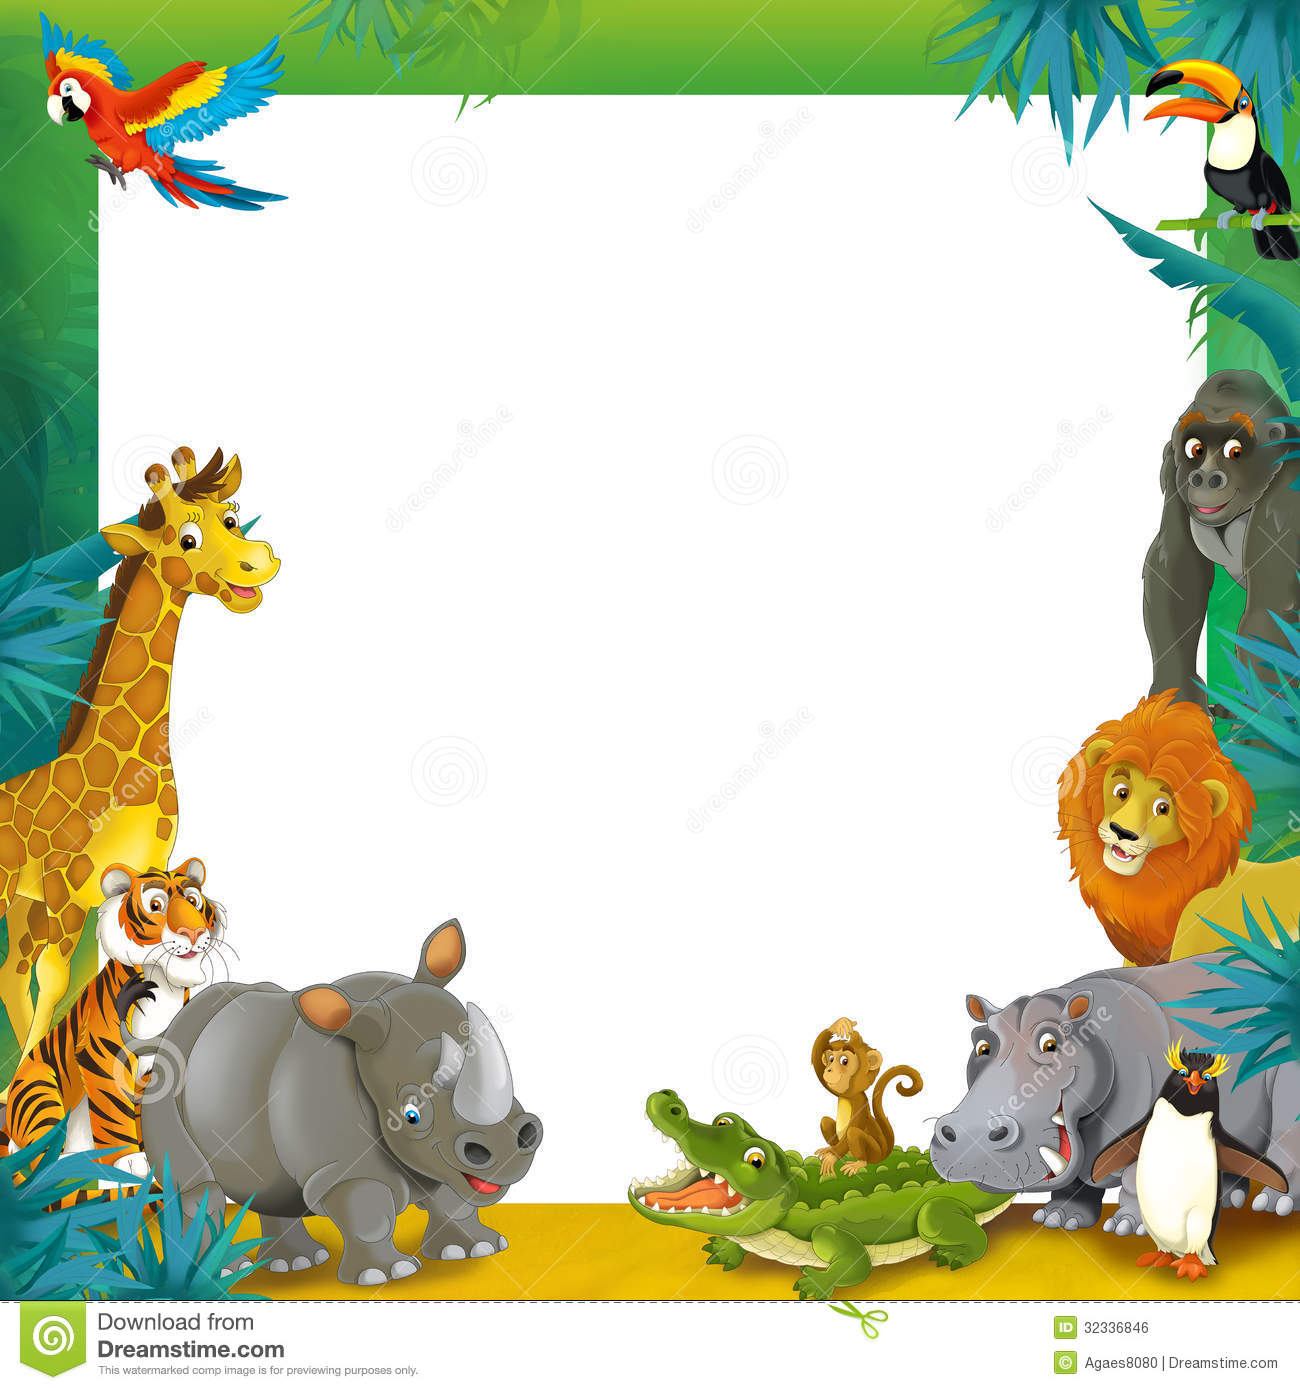 cartoon safari jungle frame border template clip art parrot black and white clip art parrot wings art project